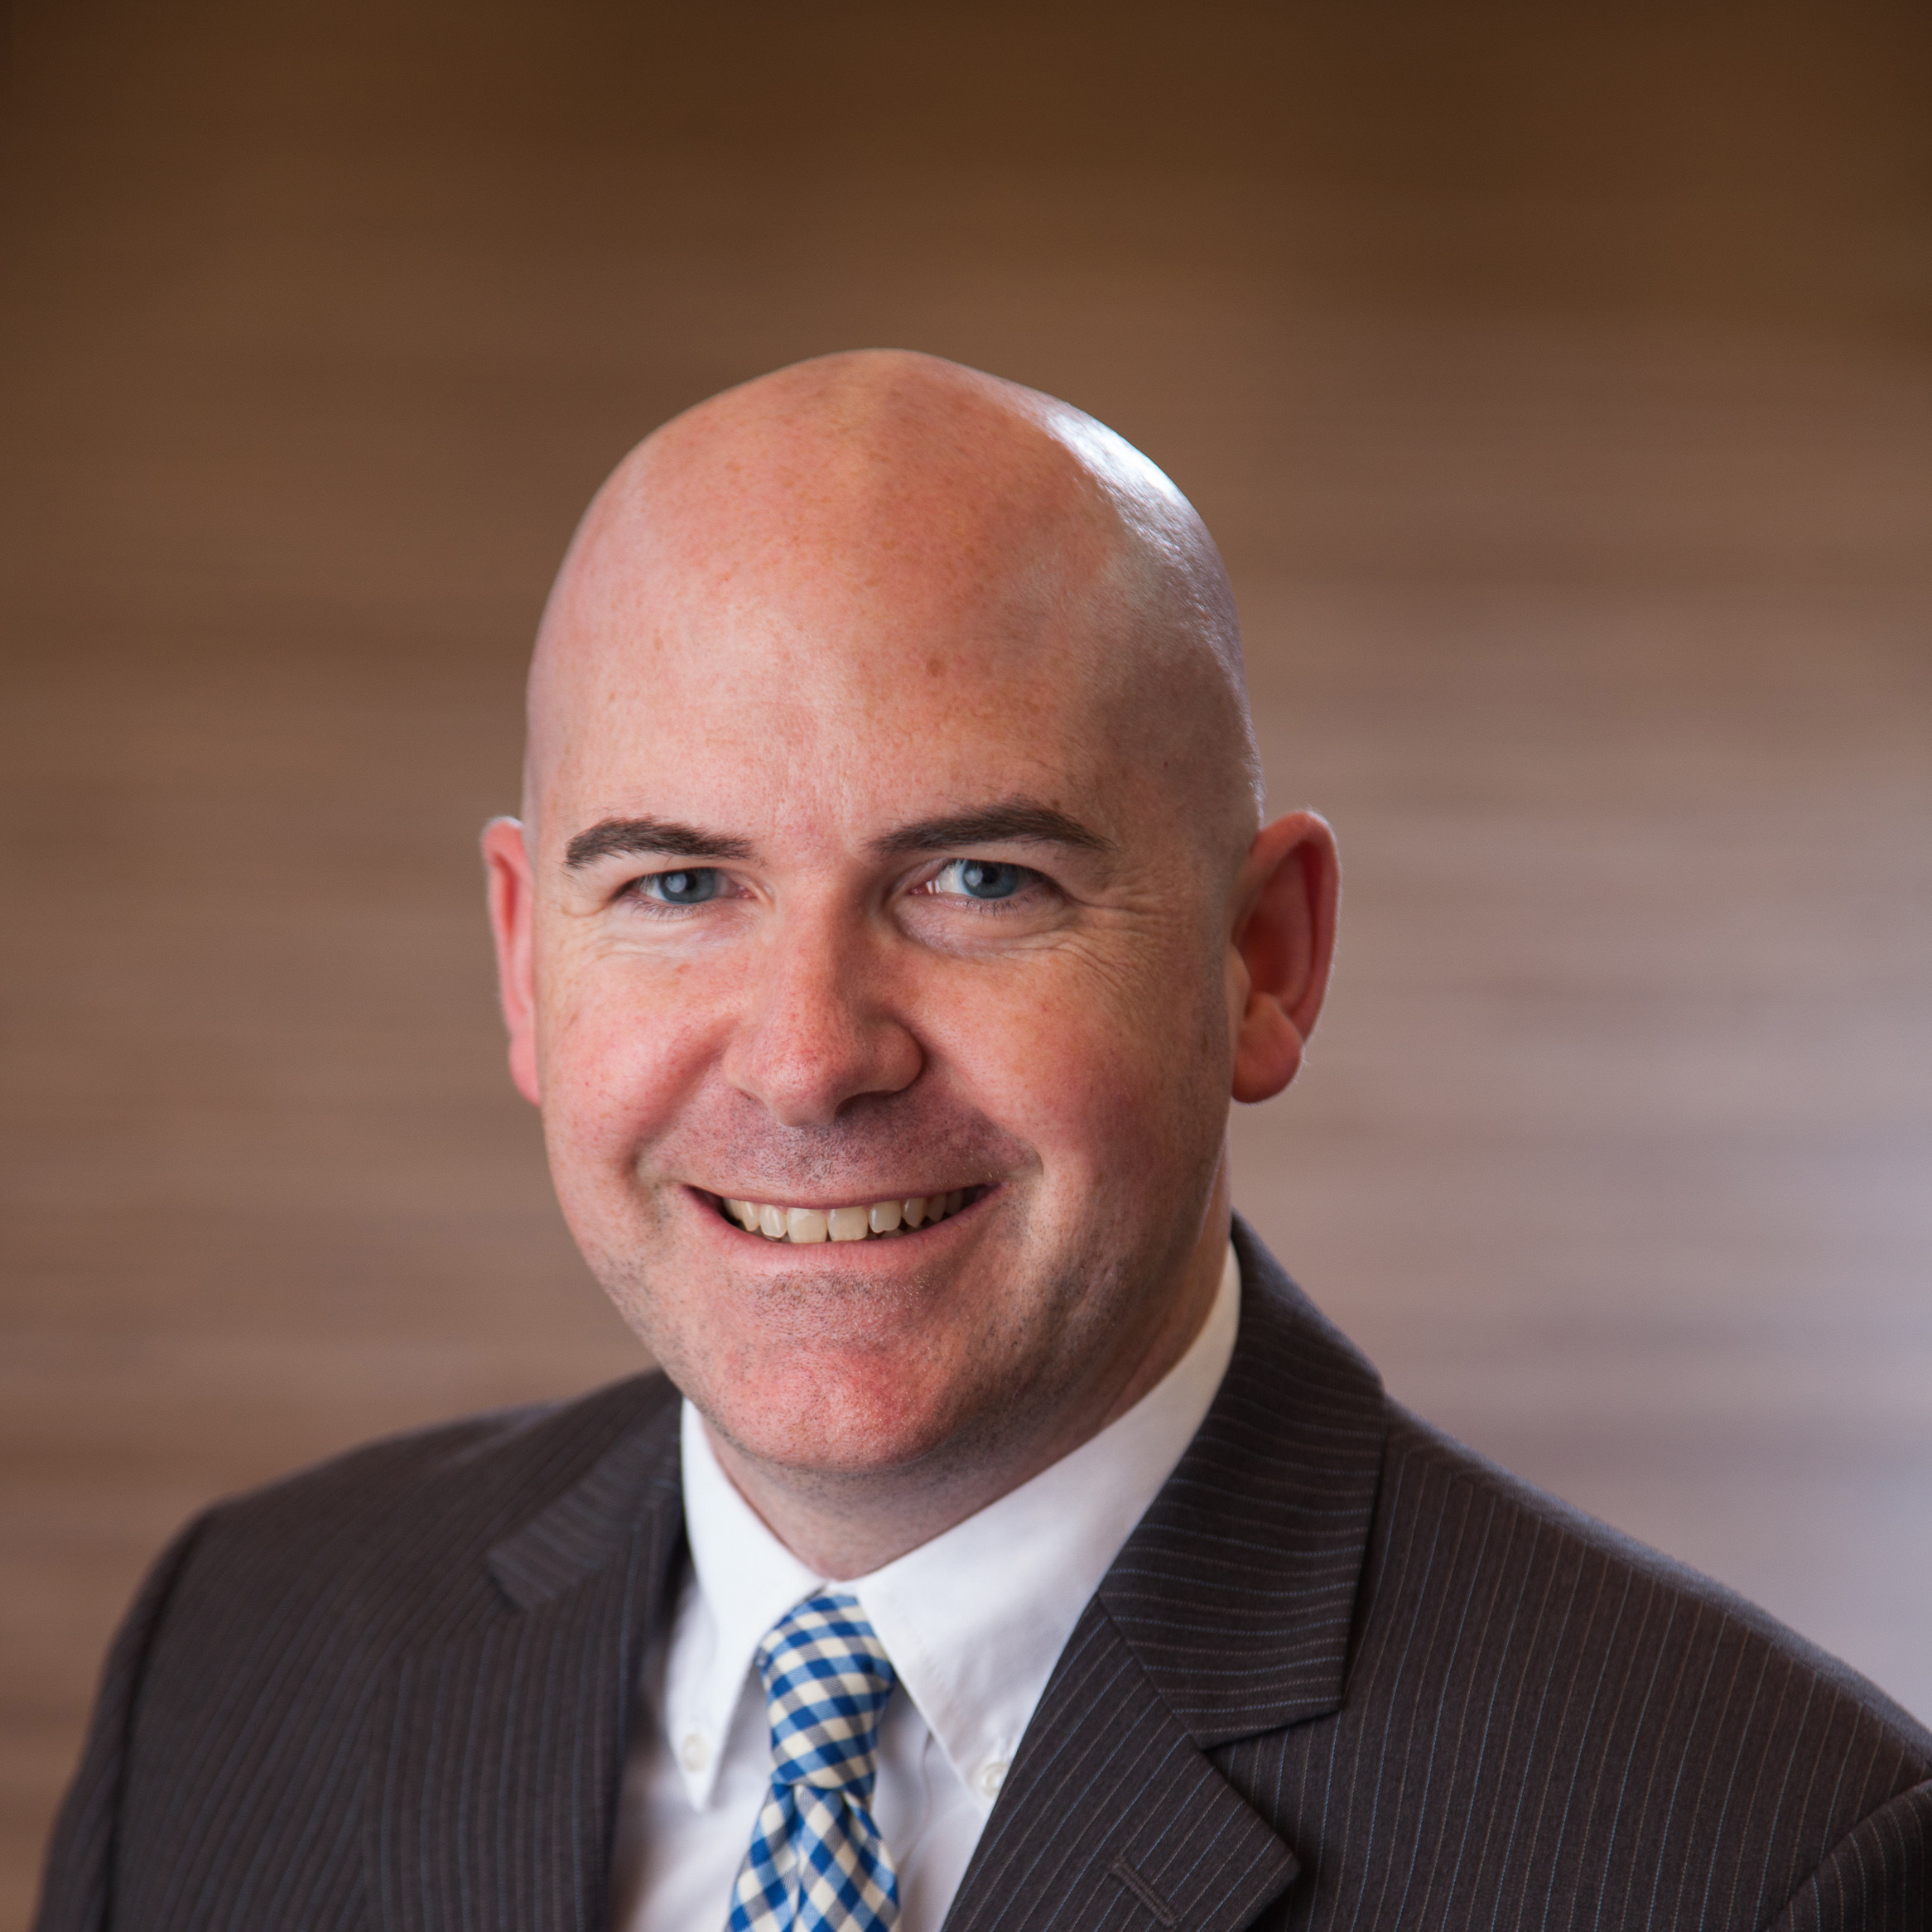 Jason Leverant - AtWork Group President and COO